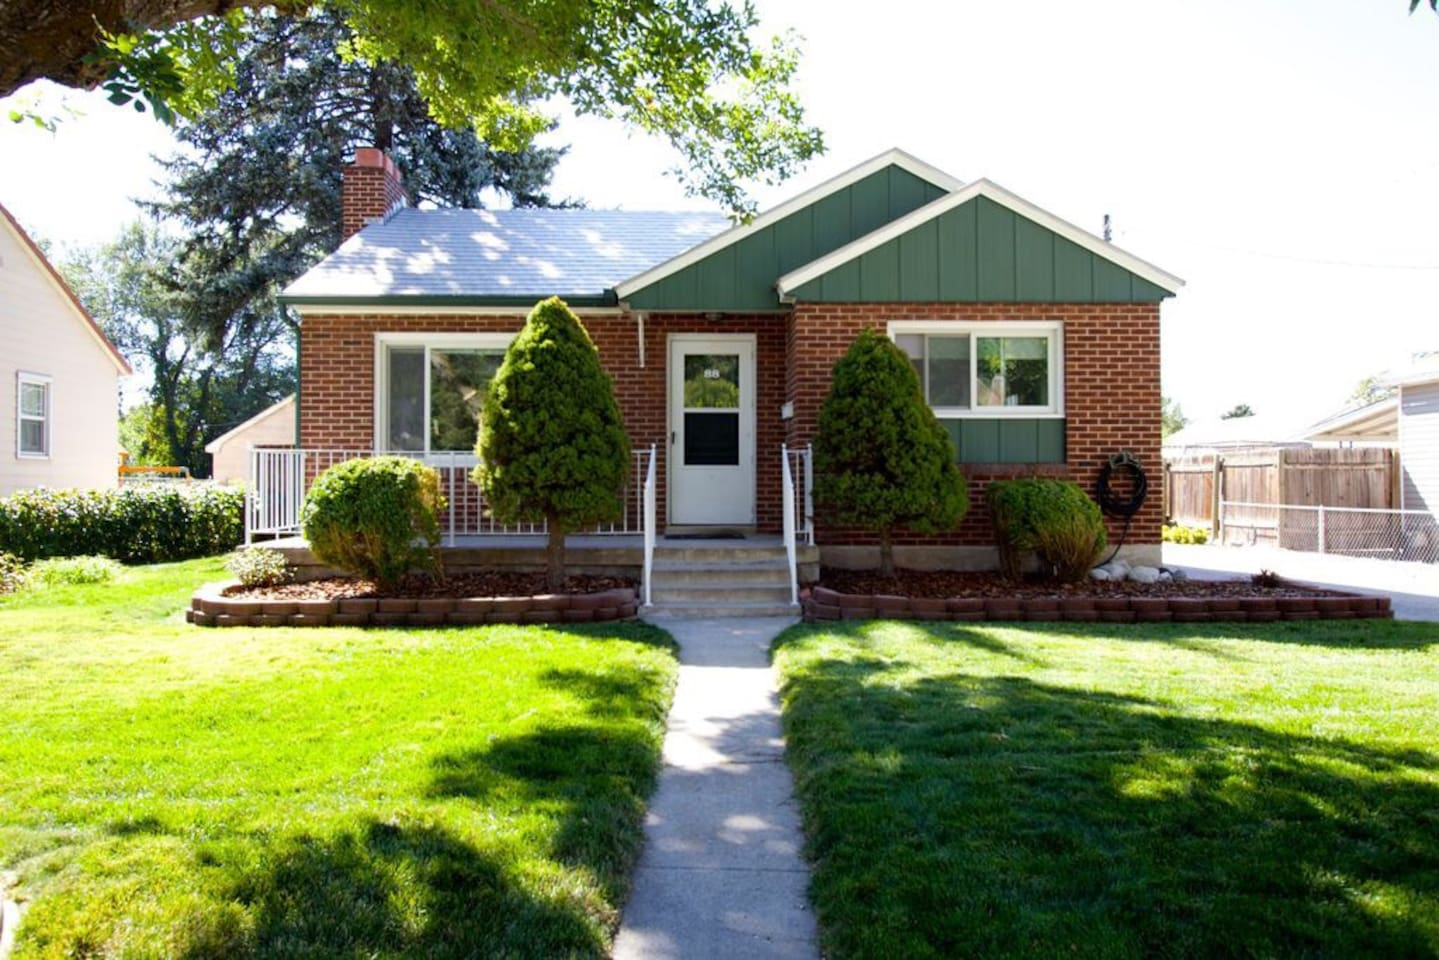 Our cute brick home! We love living here and would be thrilled to have you as a guest!